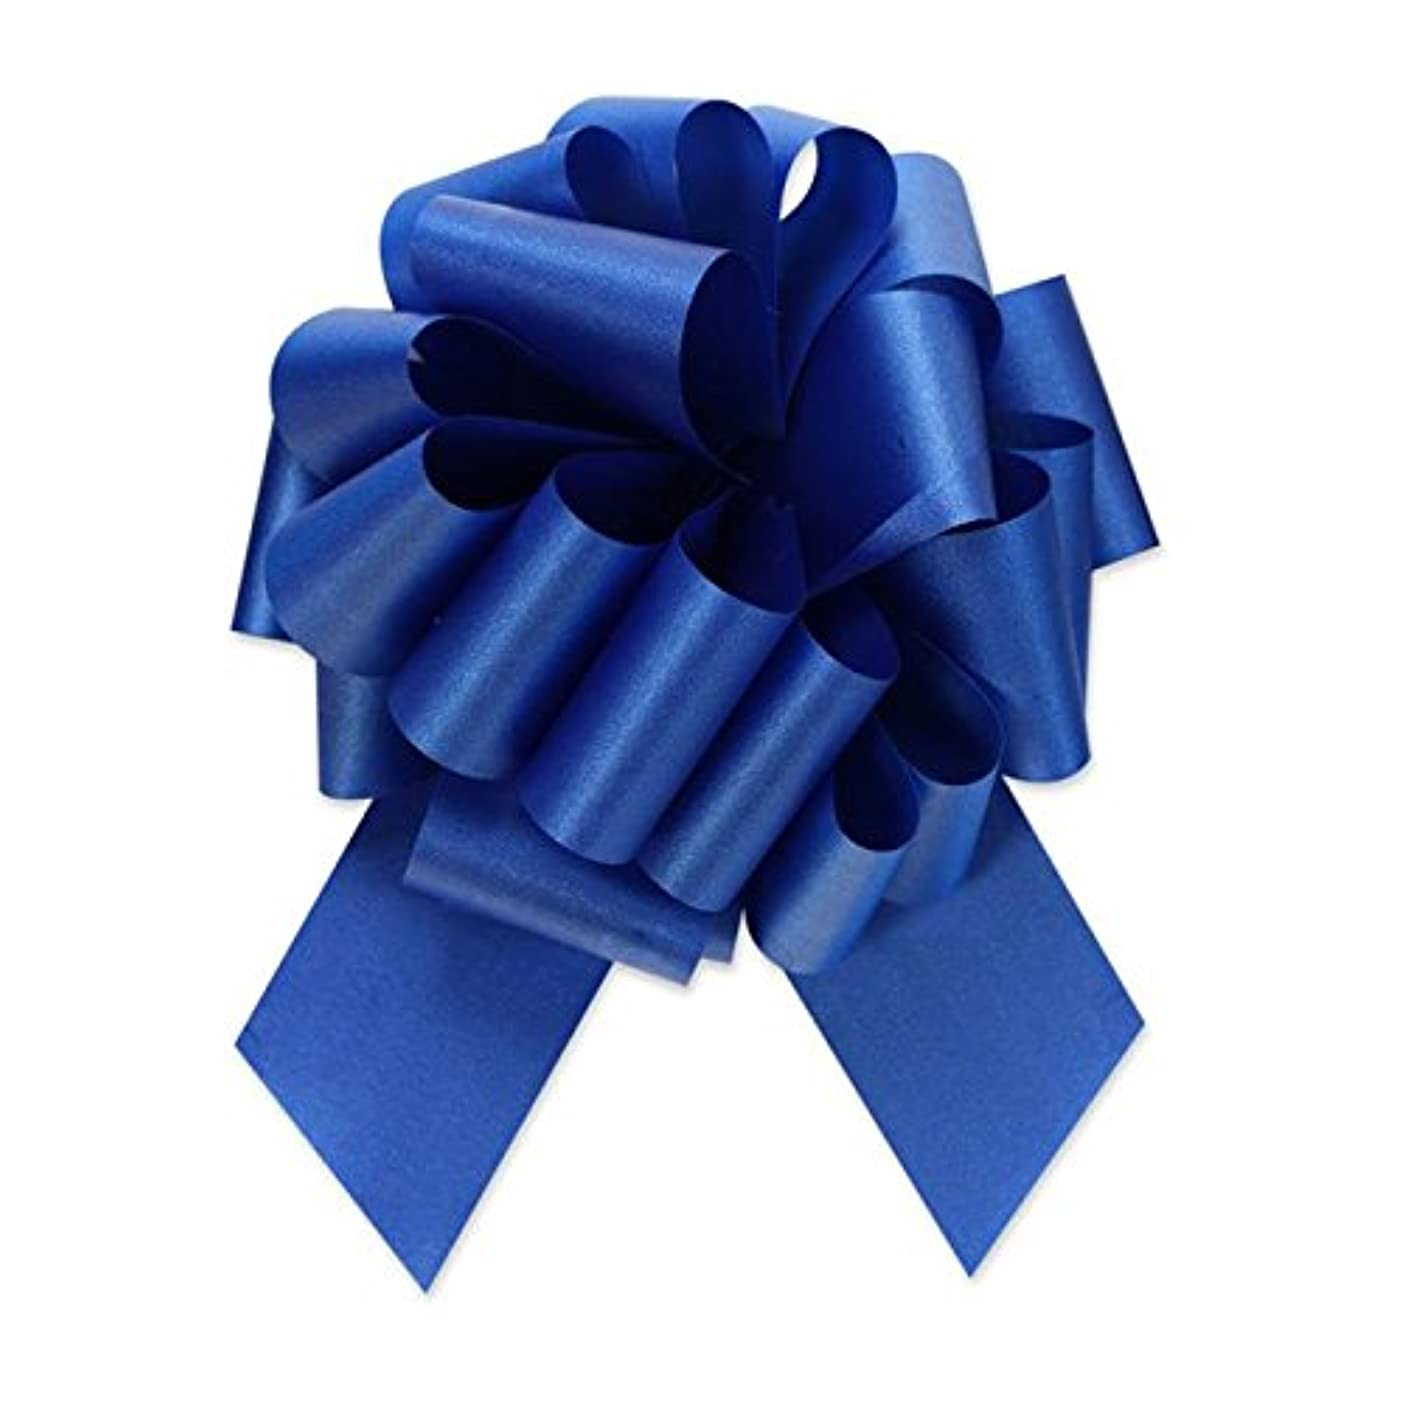 Berwick Offray Ribbon Pull Bow, 5.5'' Diameter with 20 Loops, Royal Blue